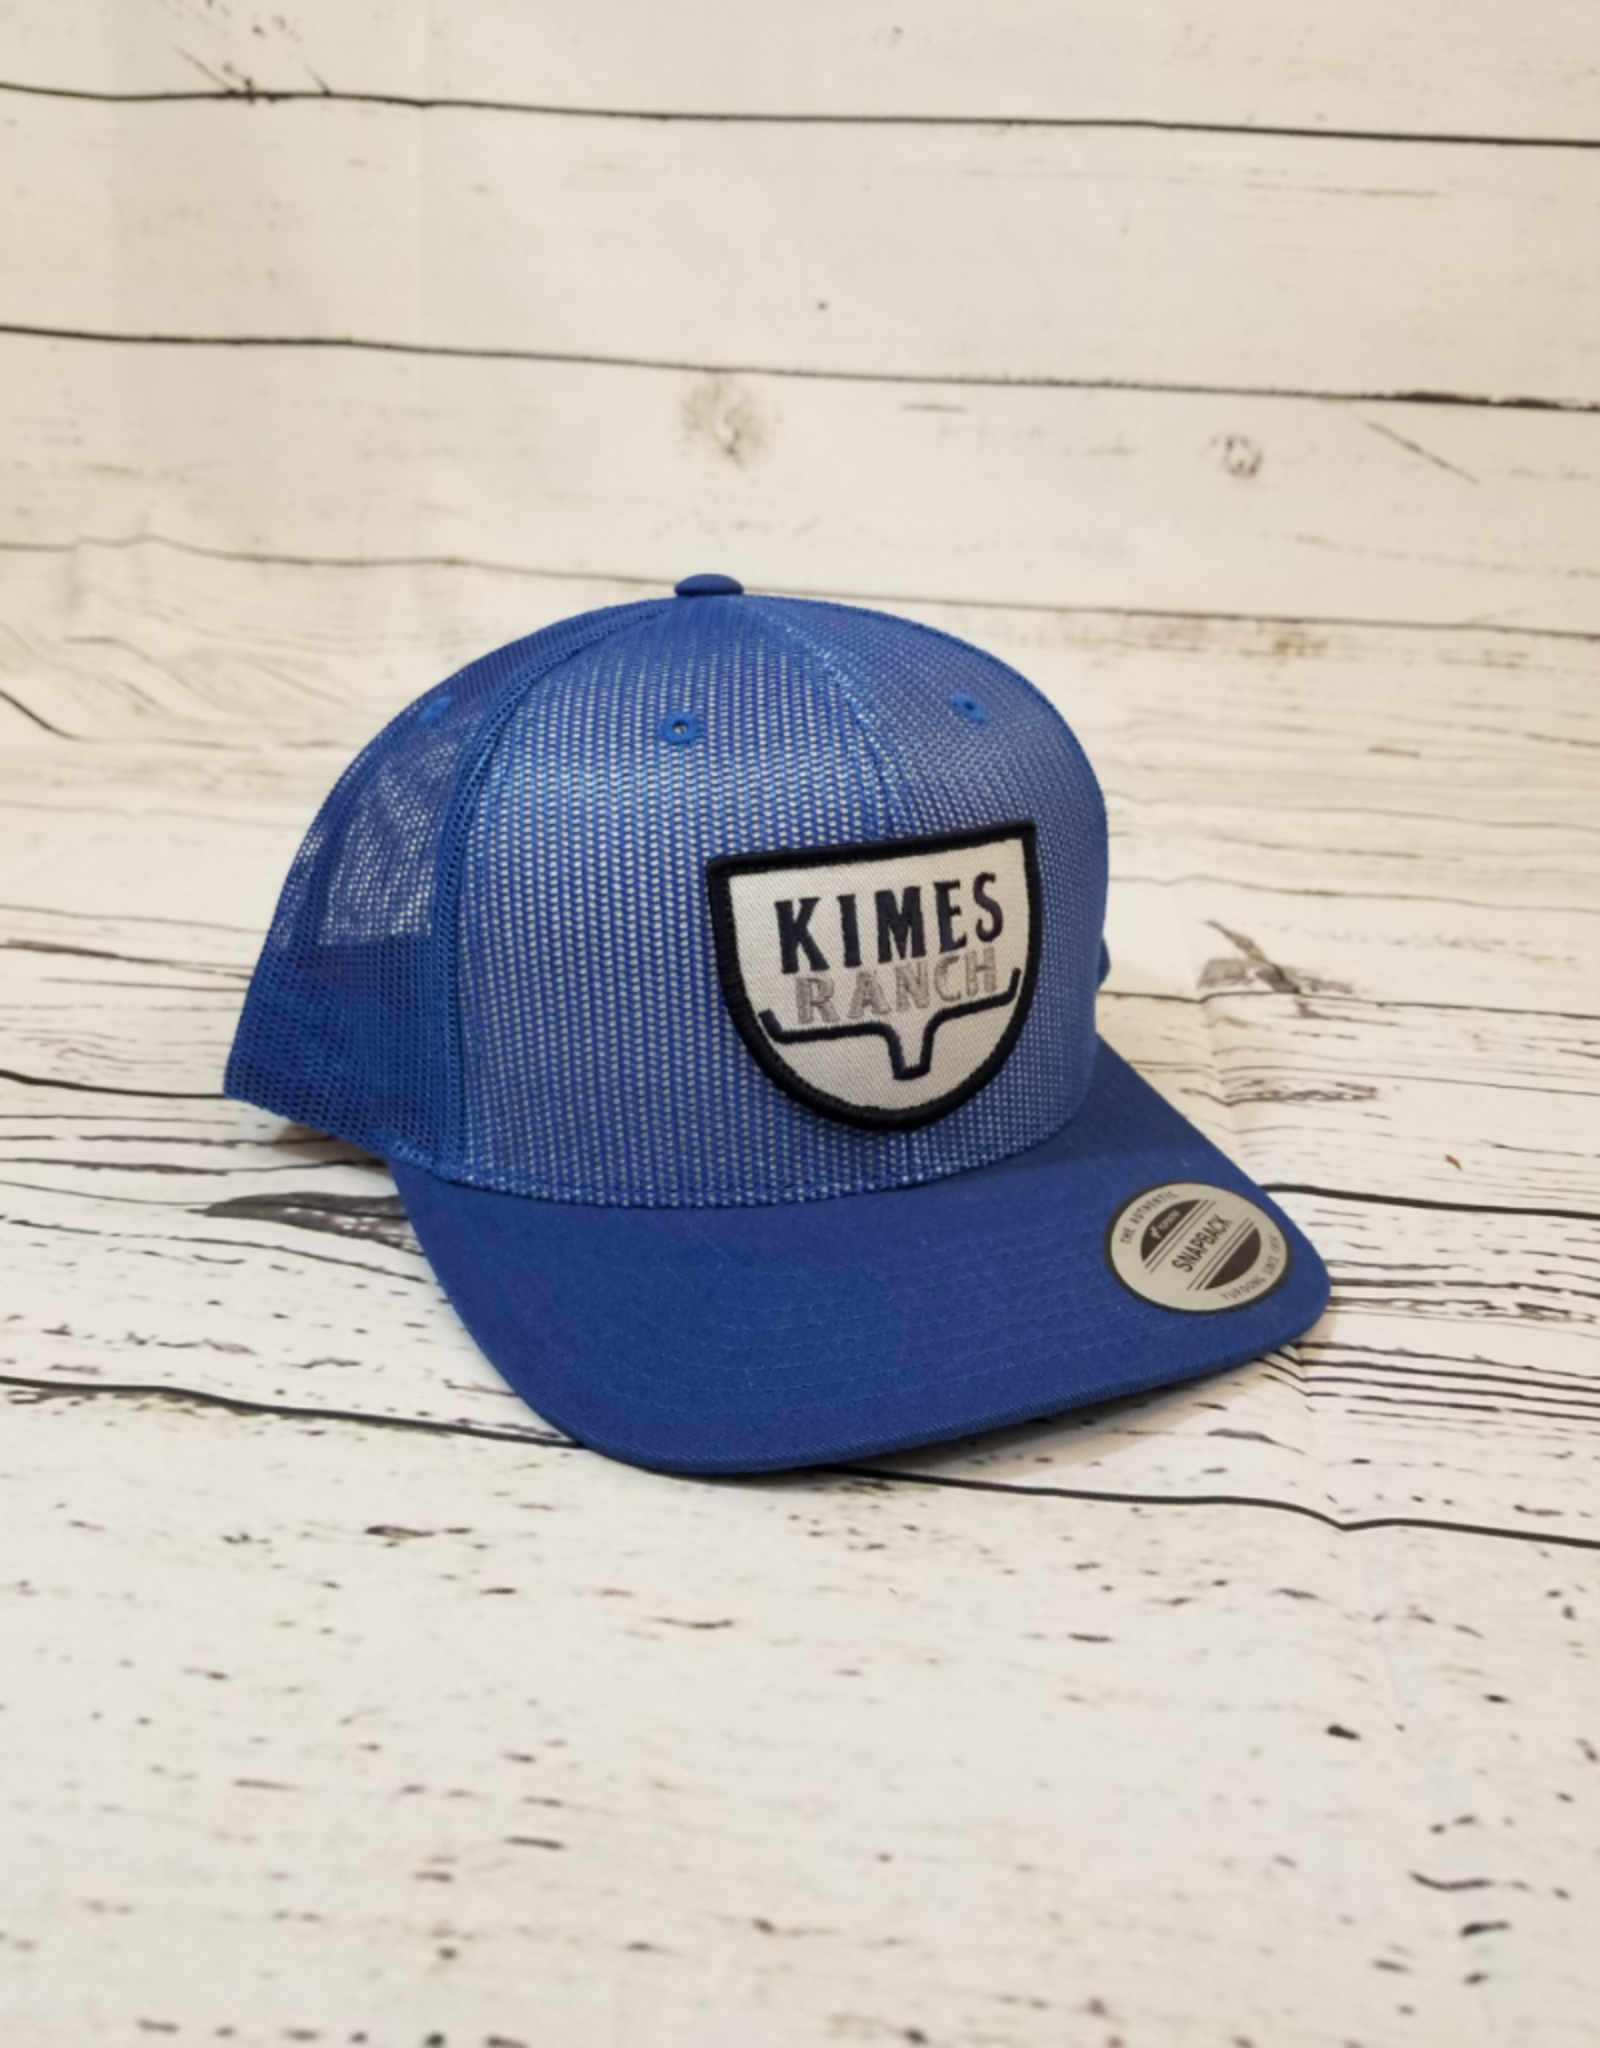 Kimes Ranch Kimes Ranch Ranger Cap